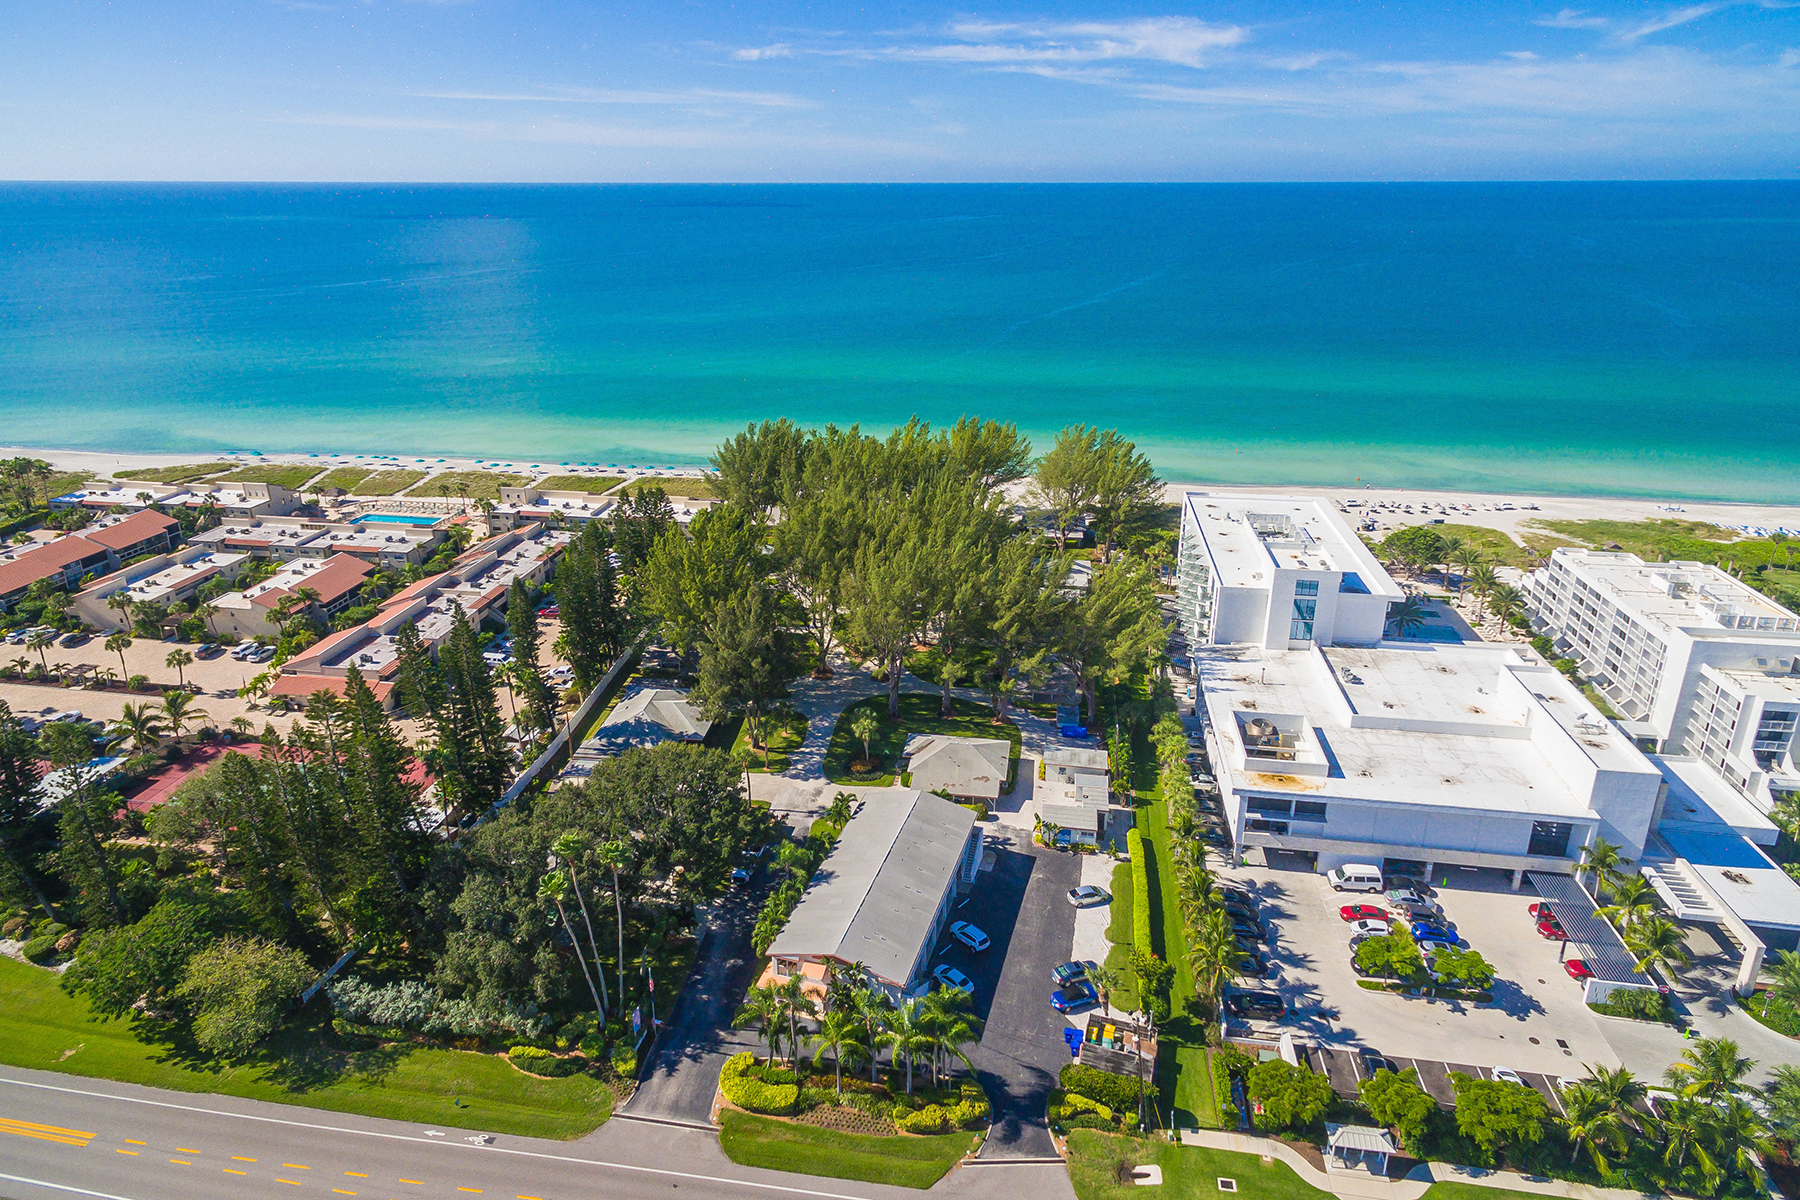 Land for Sale at 4651 Gulf Of Mexico Dr Dr Longboat Key, Florida 34228 United States